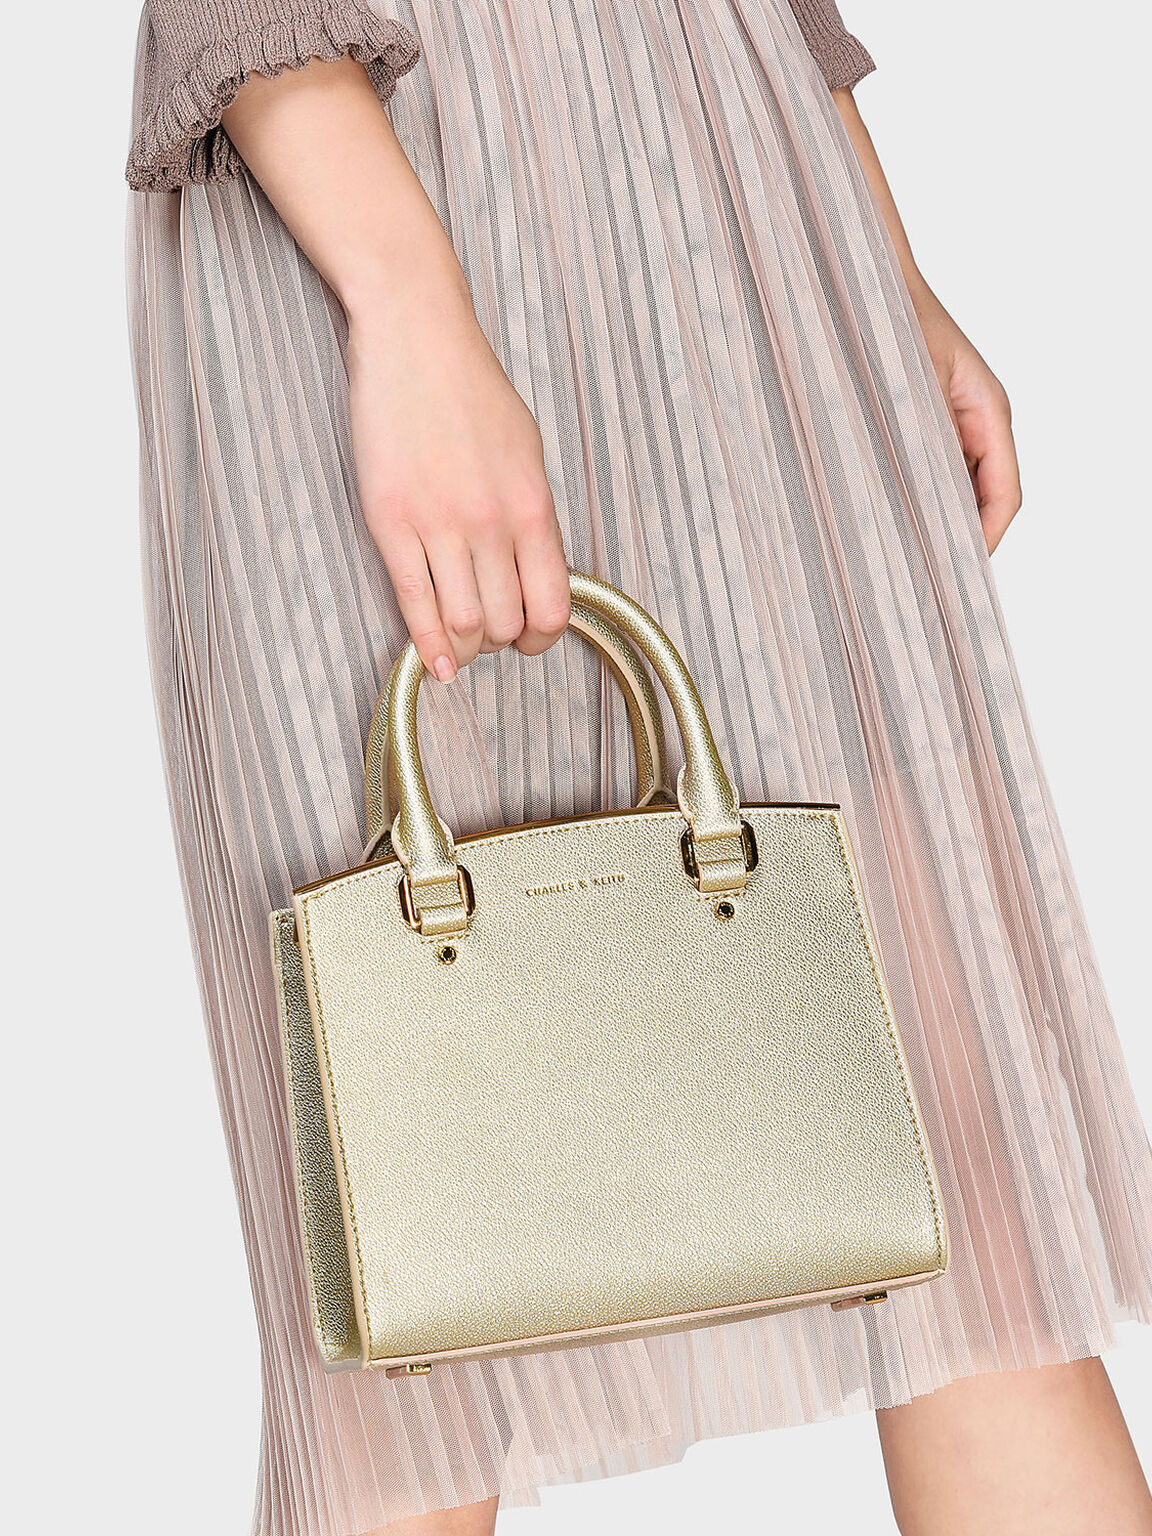 Structured Handbag, Gold, hi-res